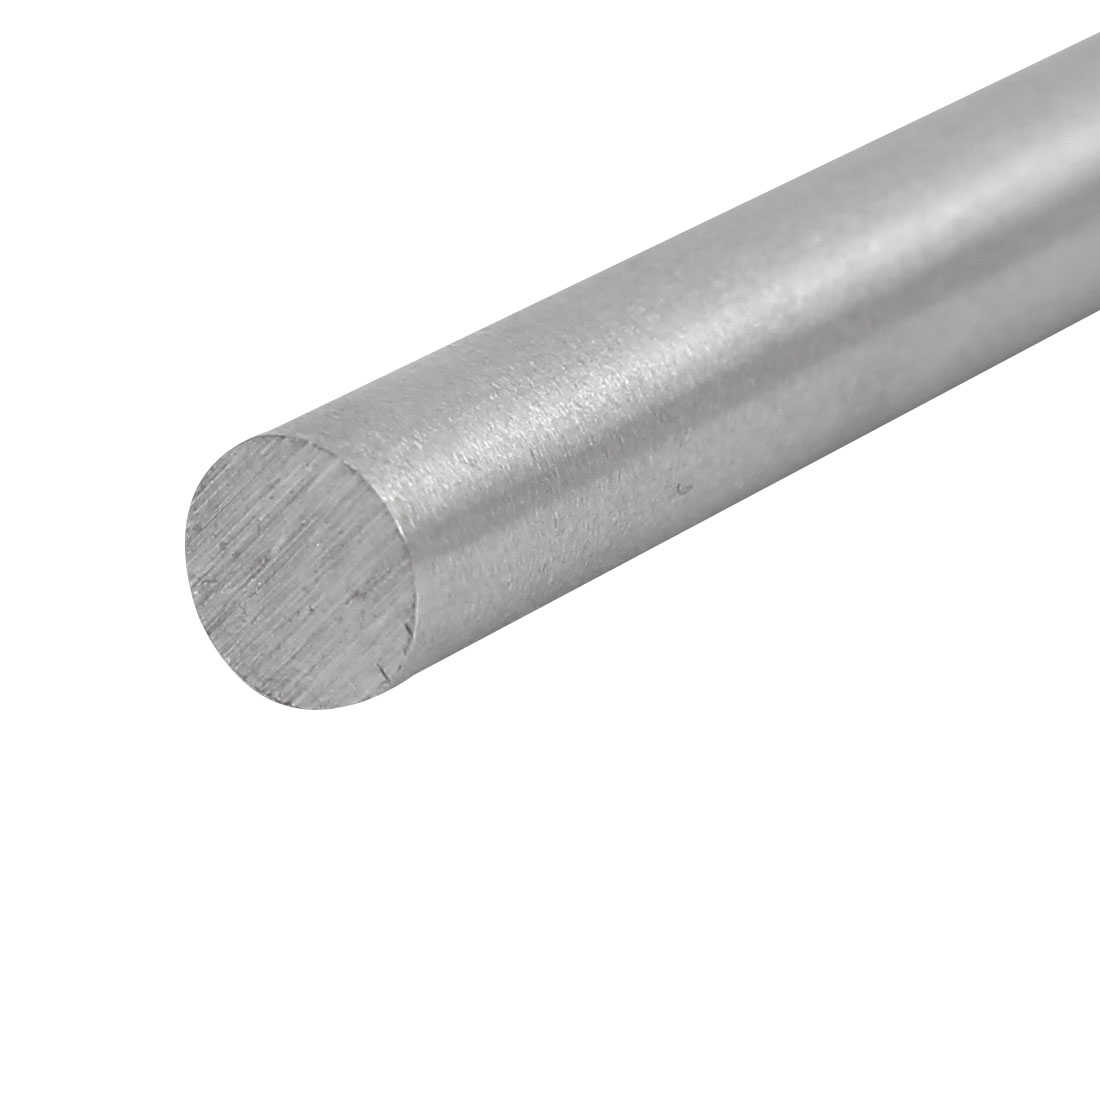 4.5mm Dia 100mm Length HSS Round Shaft Rod Bar Lathe Tools Gray 2pcs